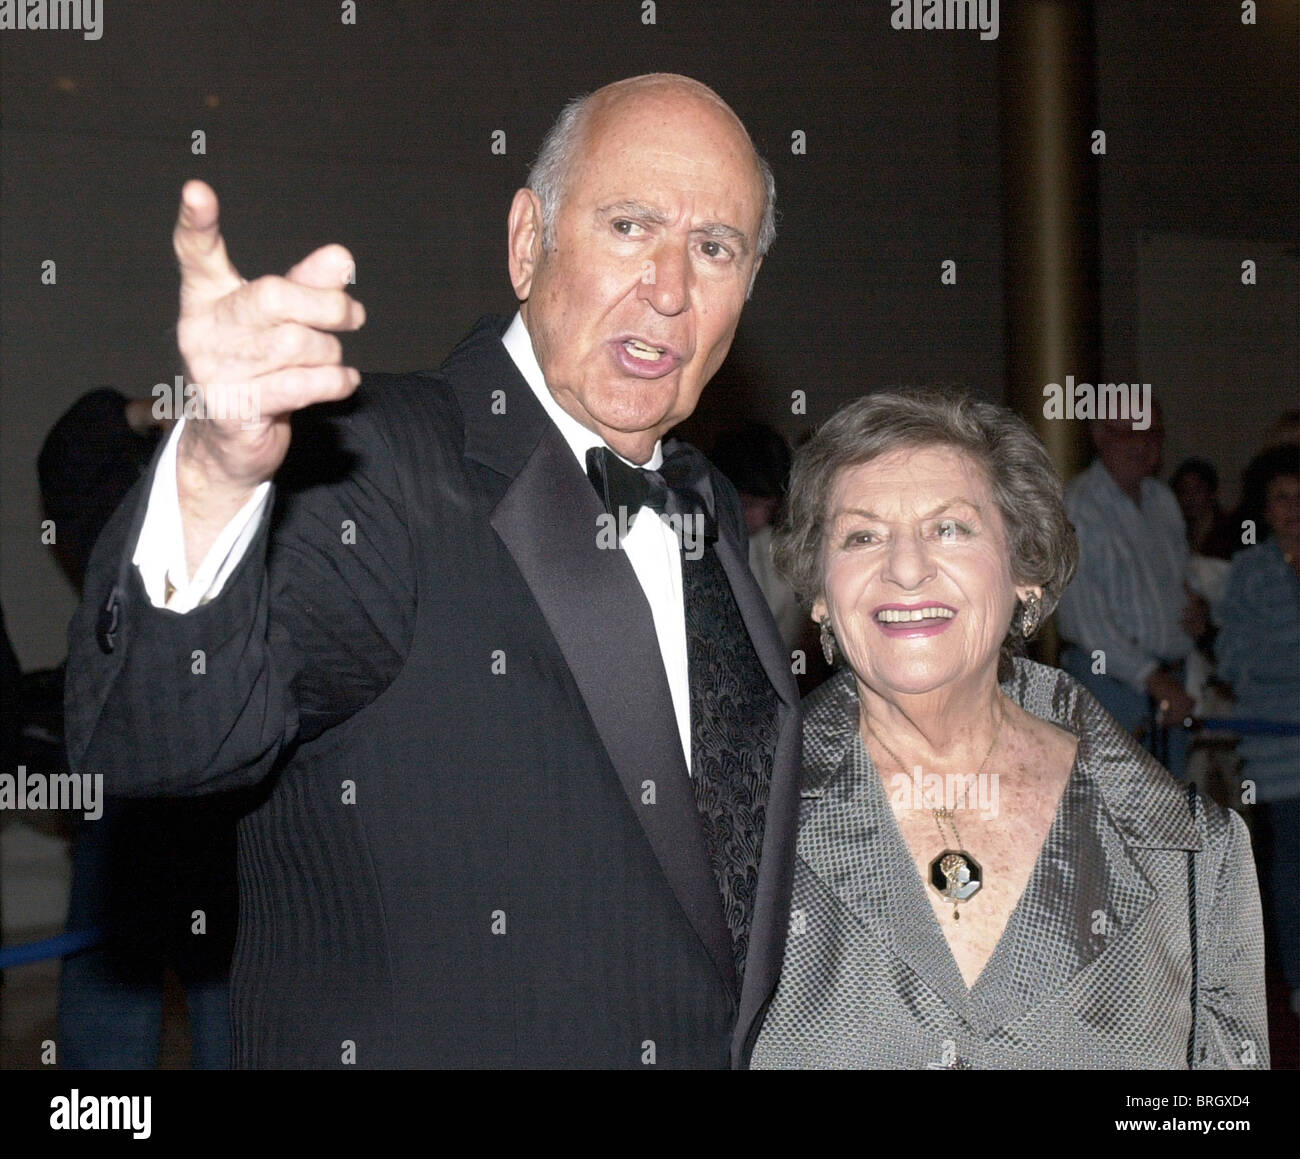 Carl Reiner and his wife Estelle enter the Kennedy Center prior to his reception of the Mark Twain Prize . - Stock Image